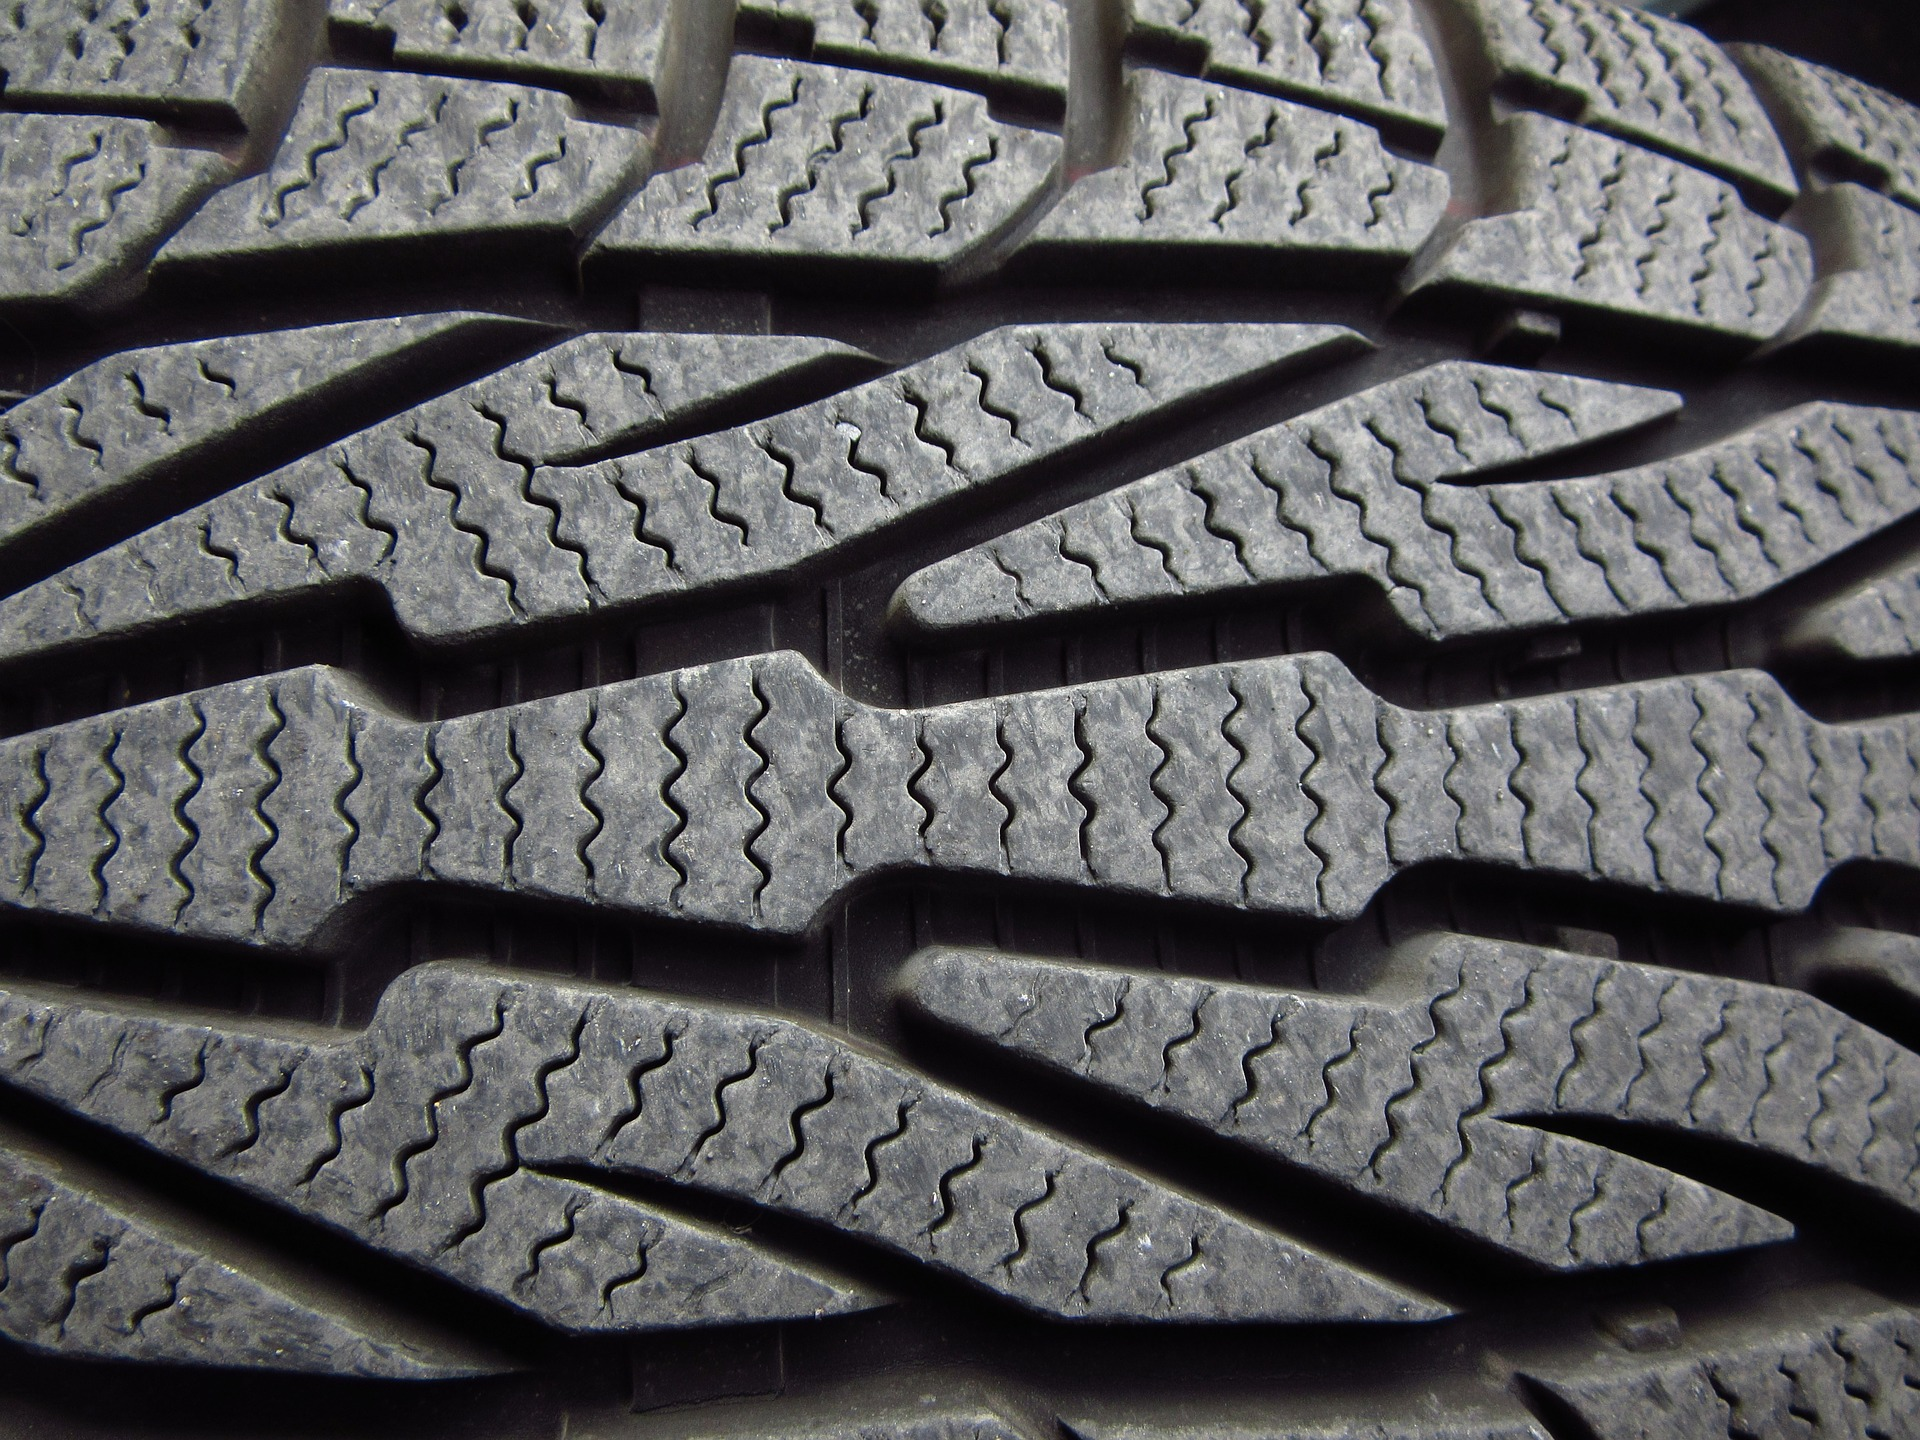 Fleet Managers: Are You Prepared for Safer Winter Tyres?